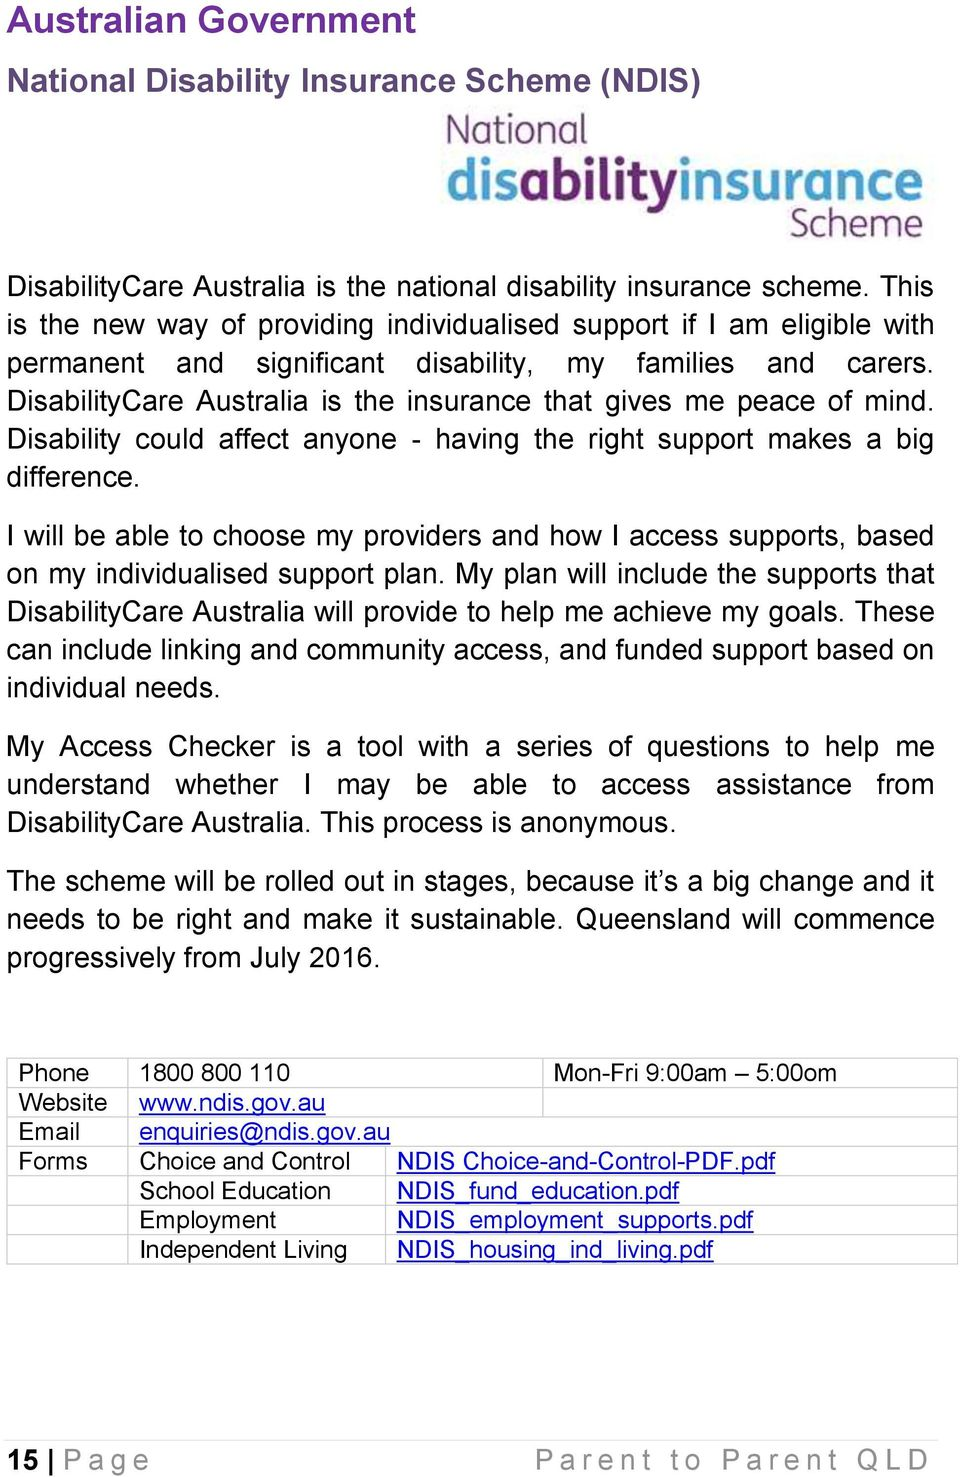 DisabilityCare Australia is the insurance that gives me peace of mind. Disability could affect anyone - having the right support makes a big difference.